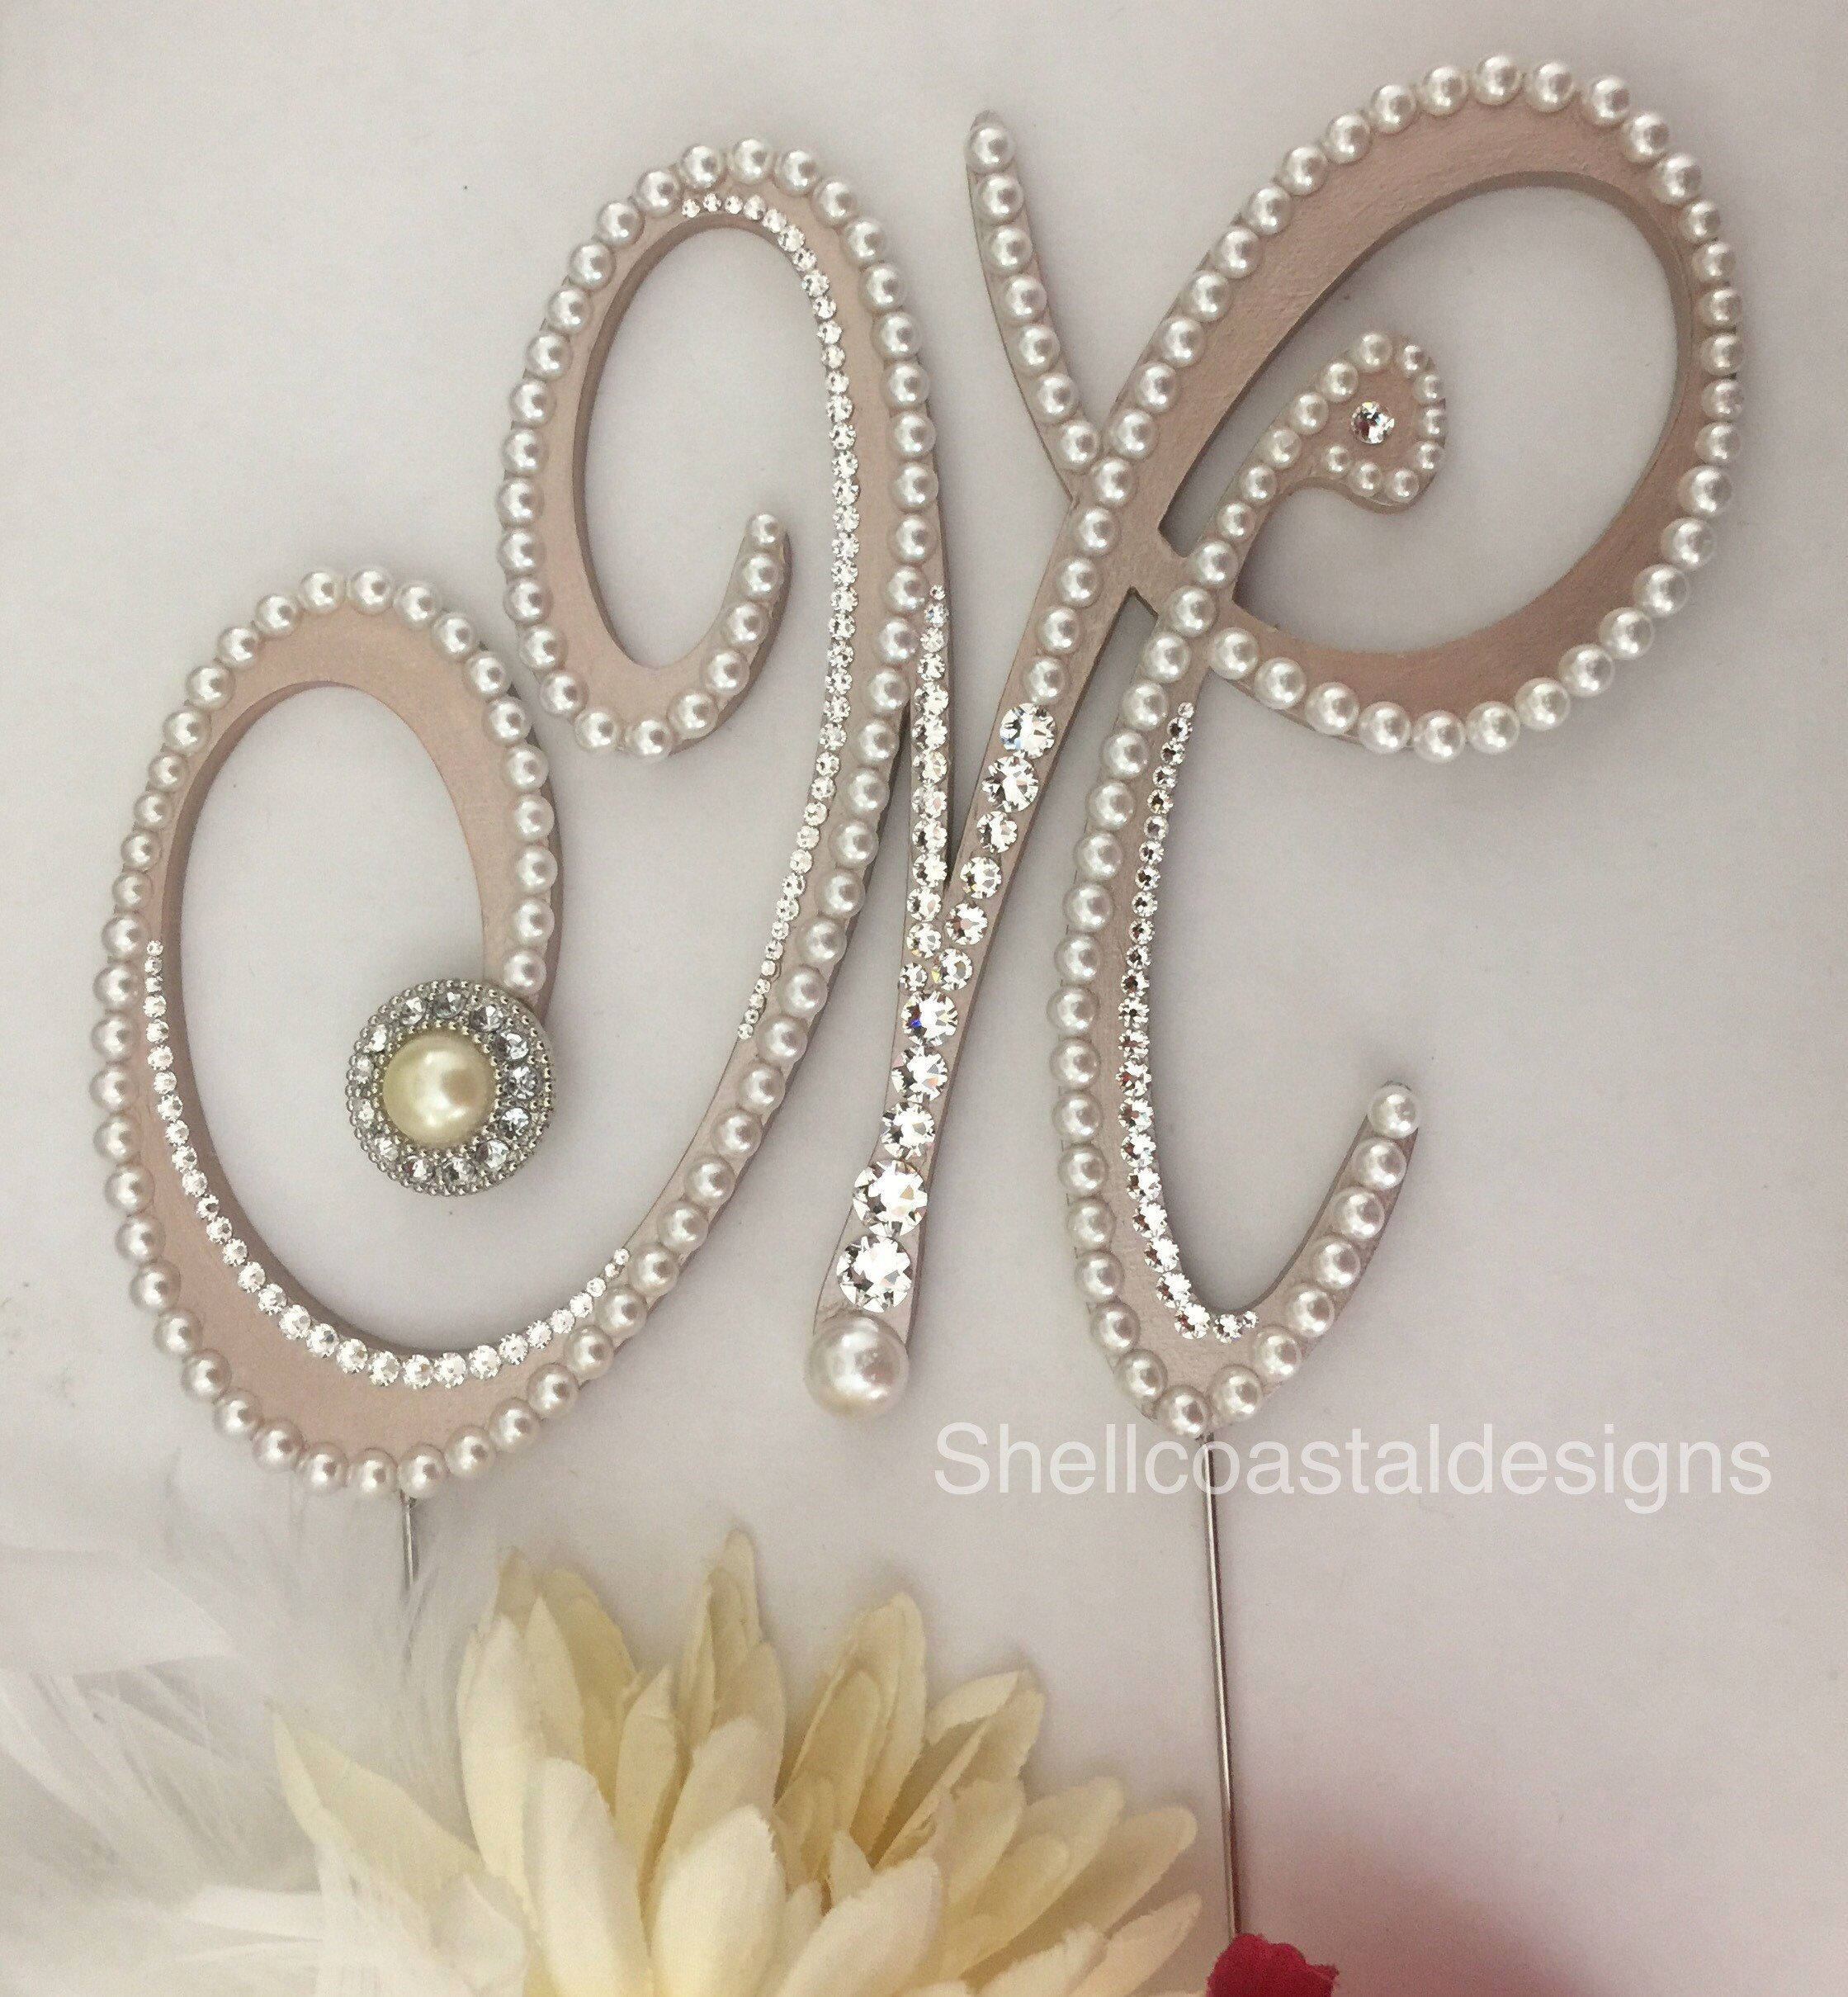 Pearl Cake Topper Monogram Wedding Cake Topper Swarovski